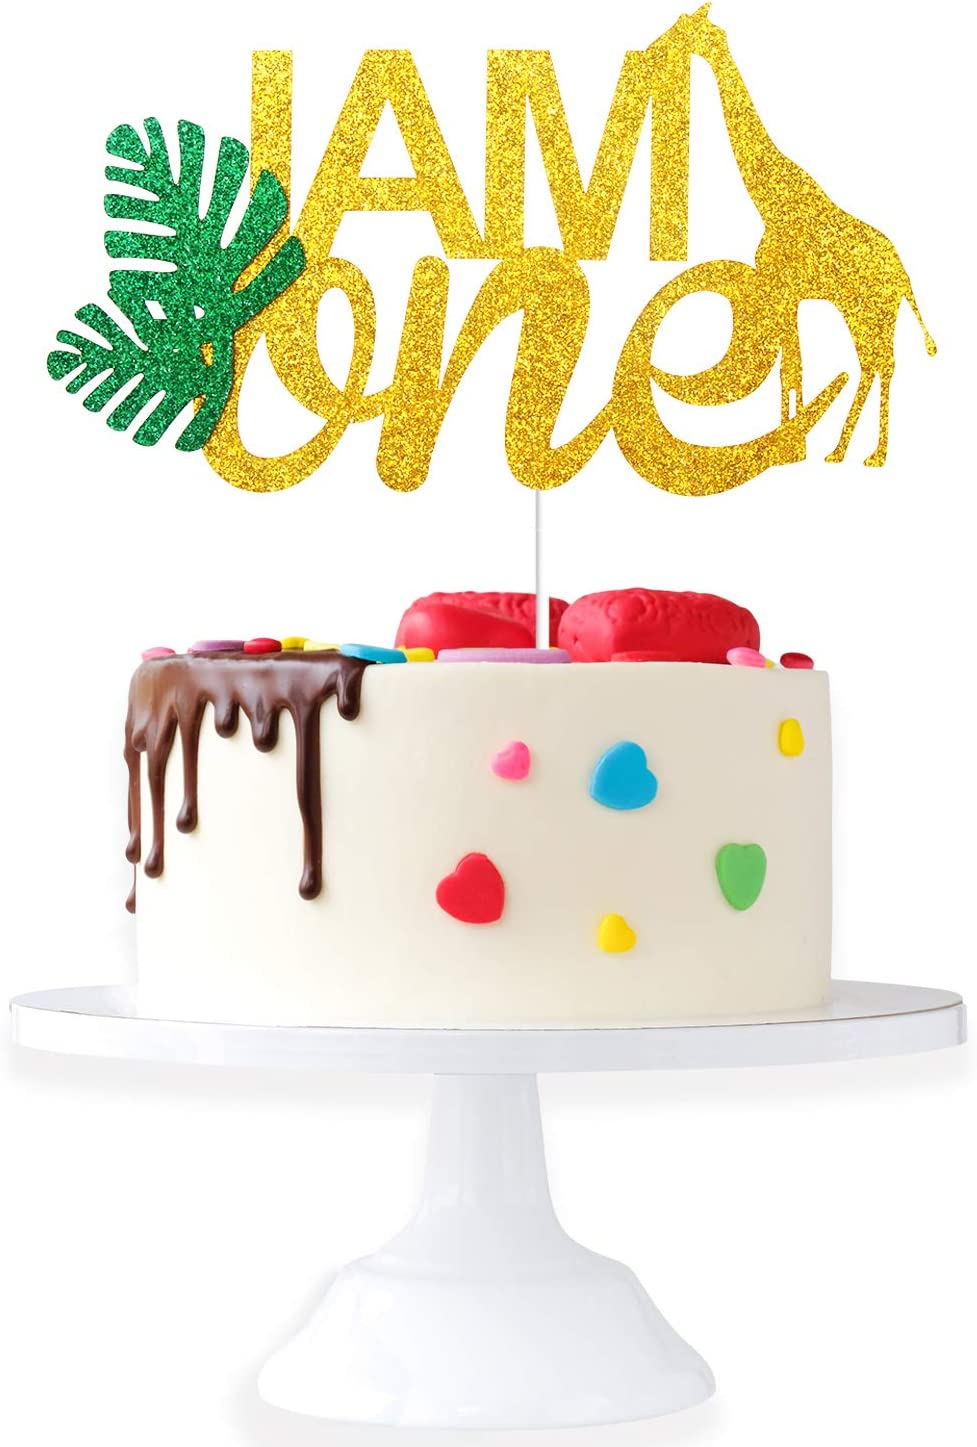 I AM ONE Birthday Cake Topper - Real Wild Child First Birthday - Smash Jungle Safari Animals Gifaffe Cake Décor - Baby Shower Welcome Baby Party Decoration